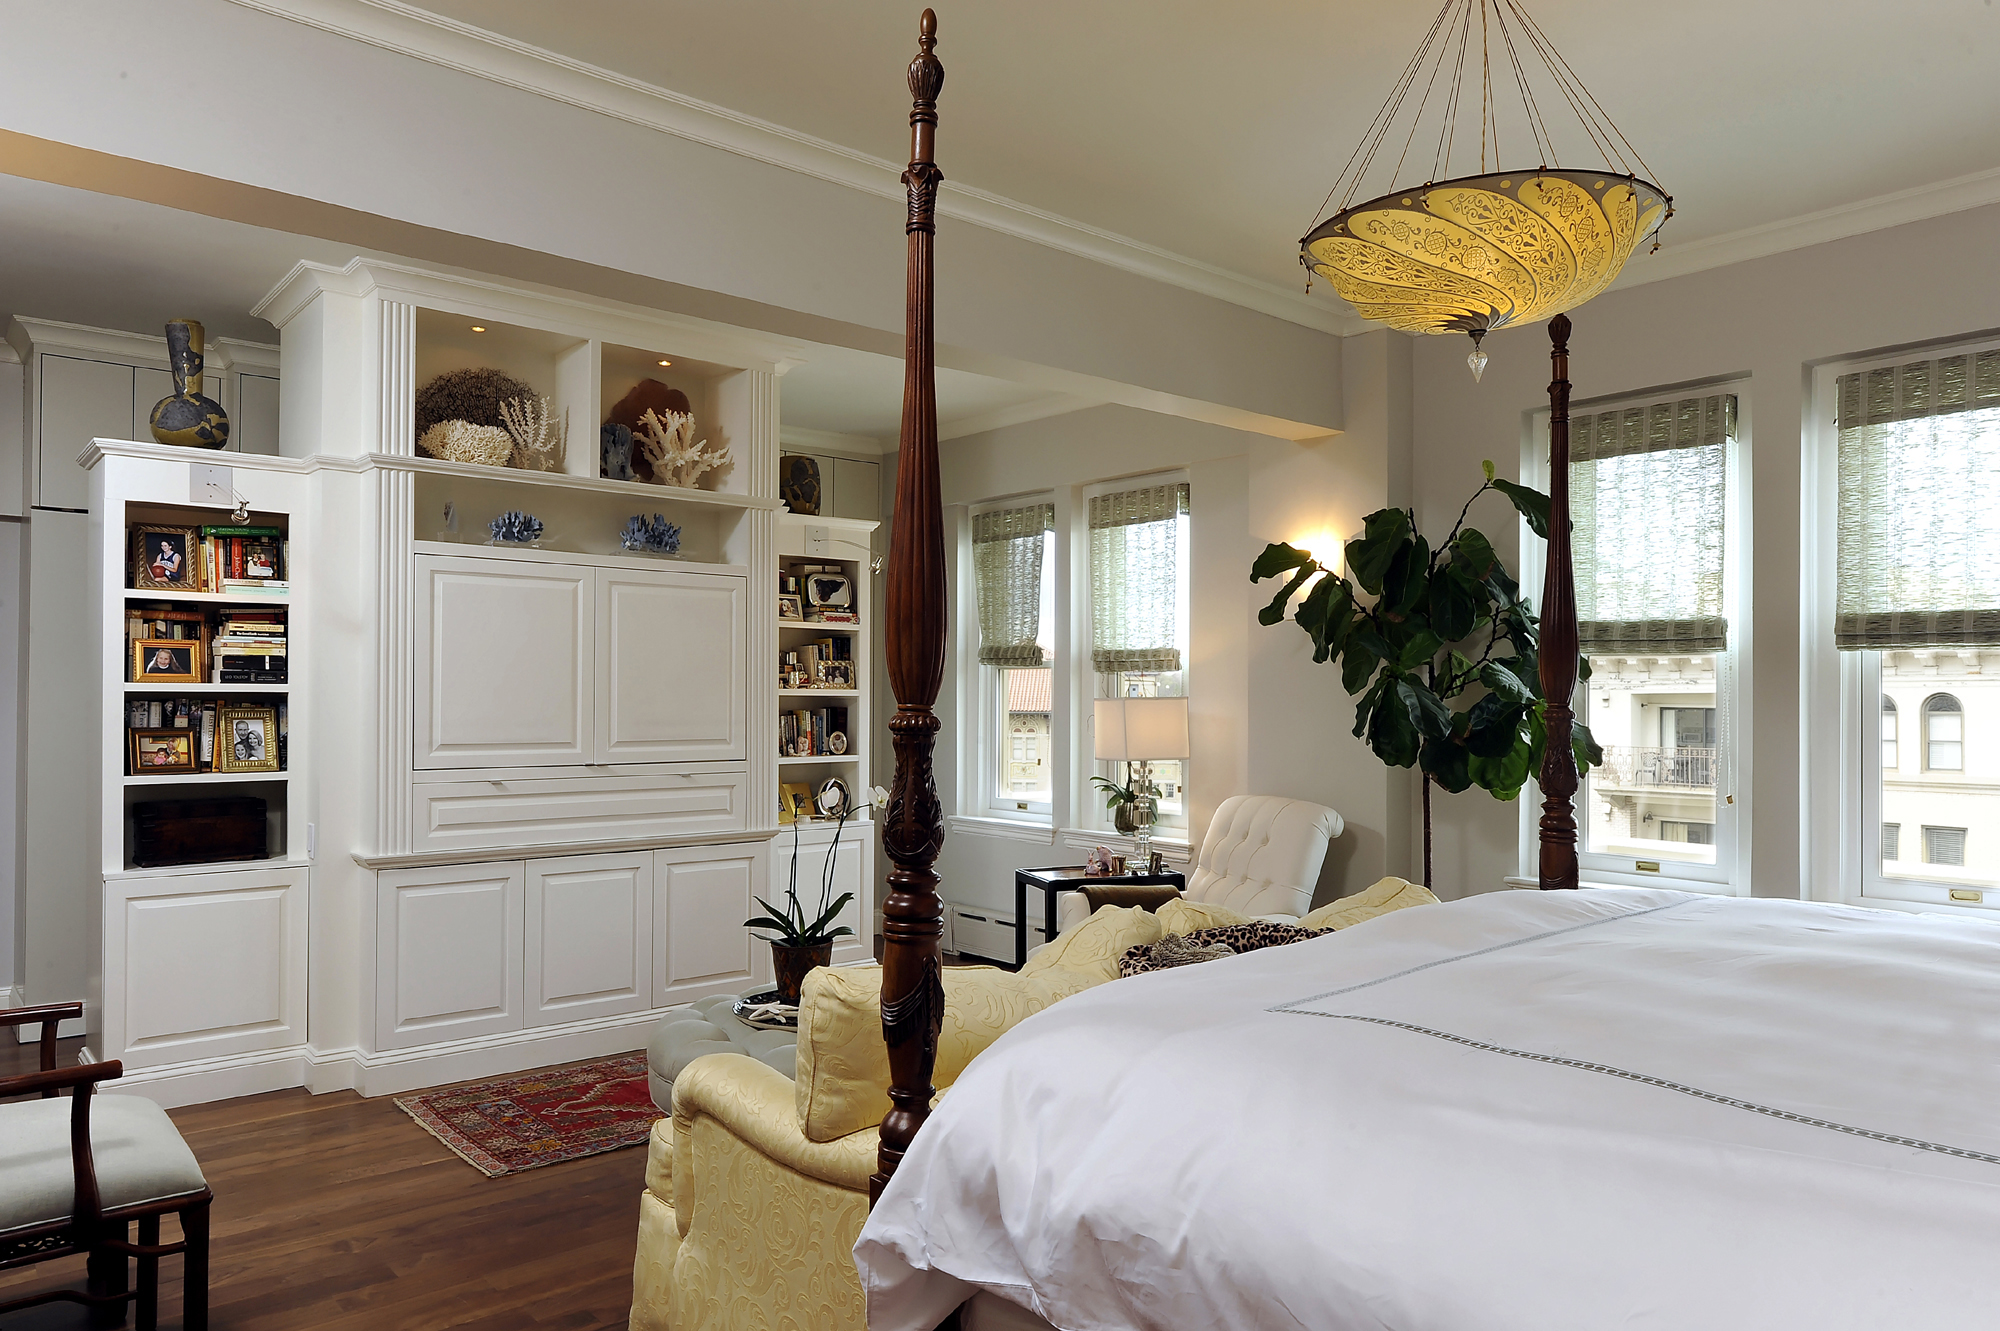 Washington DC Condo Renovation Master Bedroom. Master Suites   Bedrooms Gallery   BOWA